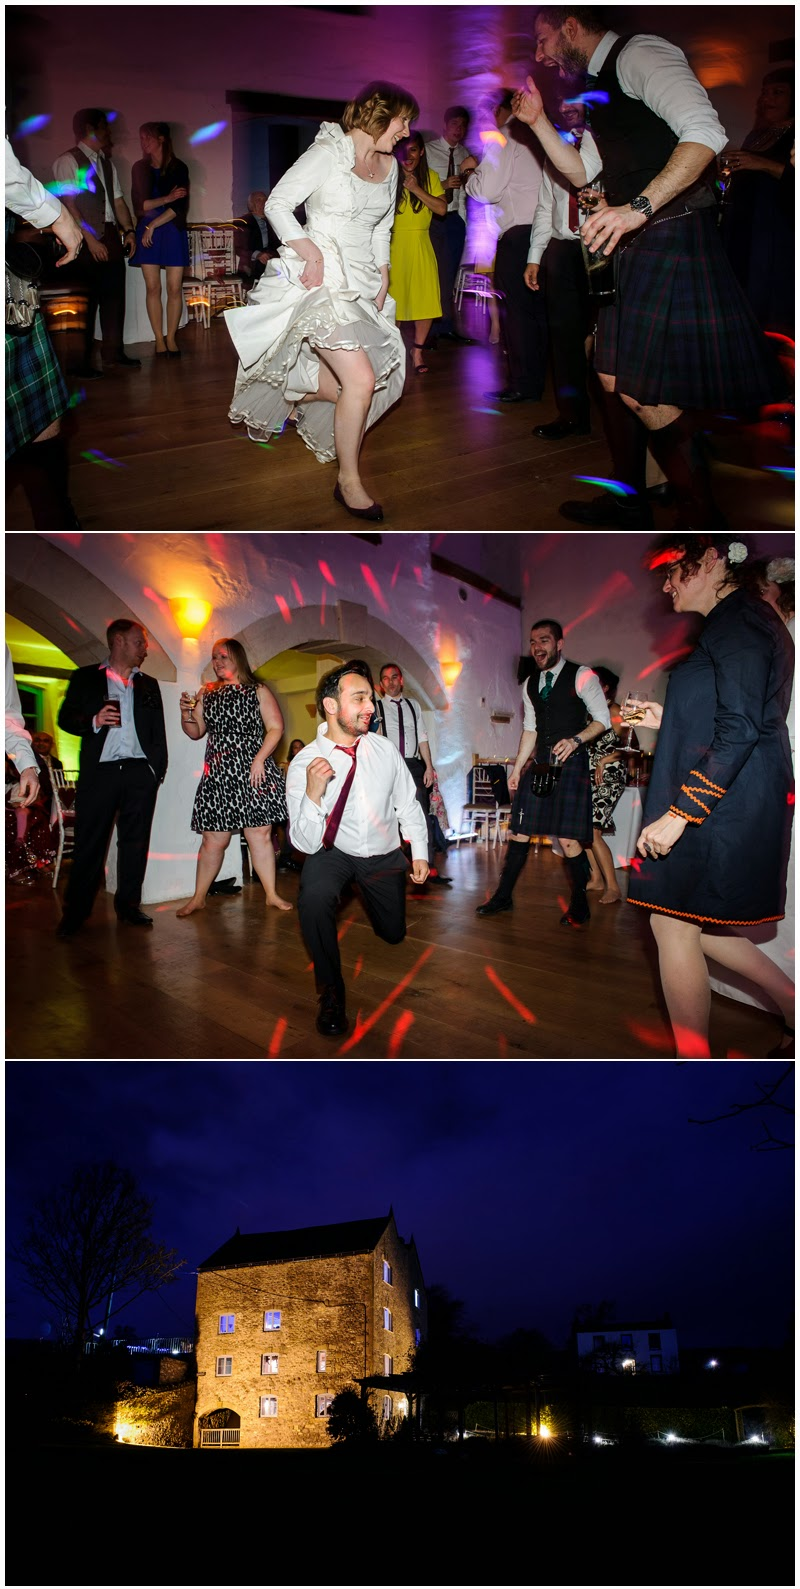 Dancing at Priston Mill wedding